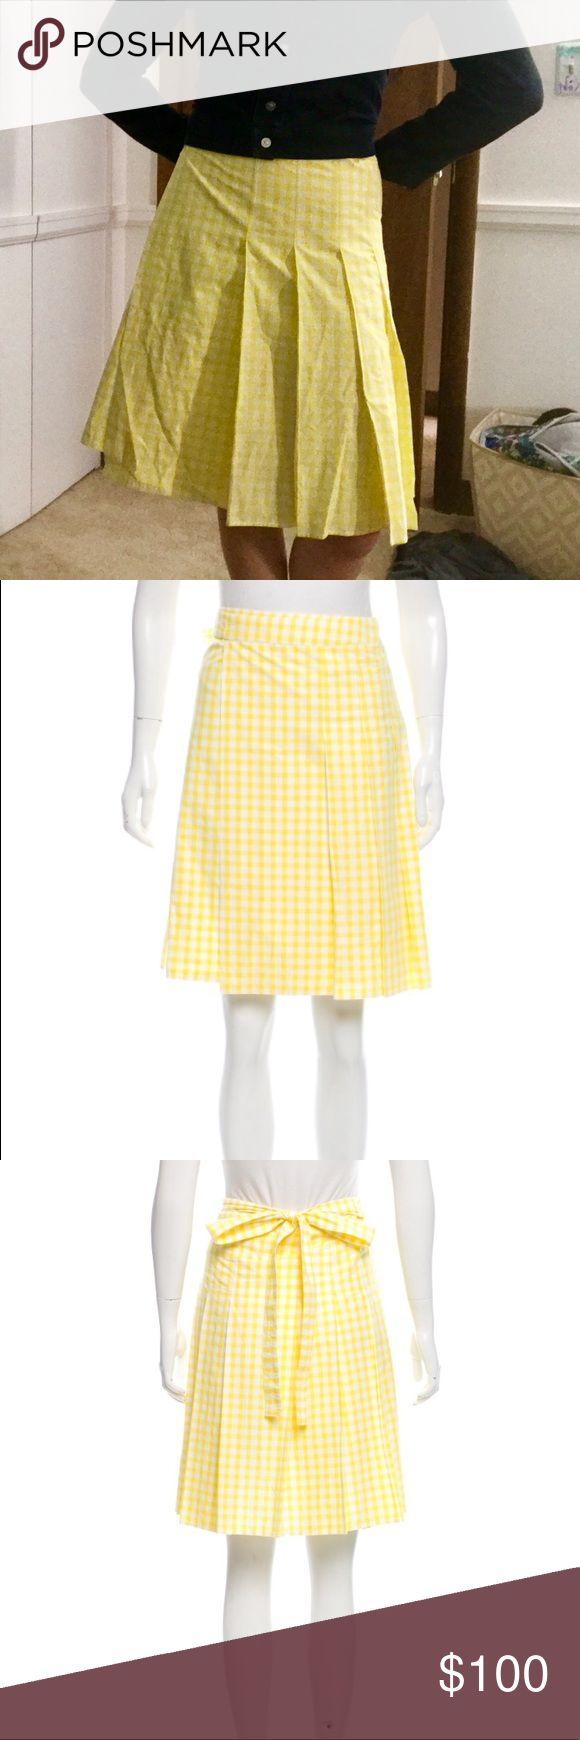 Burberry Gingham Wrap Skirt Yellow and white gingham cotton wrap skirt. GUC, just a few wrinkles from storage. This is a size 6, but since it's a wrap, I personally think it could fit a small or medium. Burberry Skirts A-Line or Full